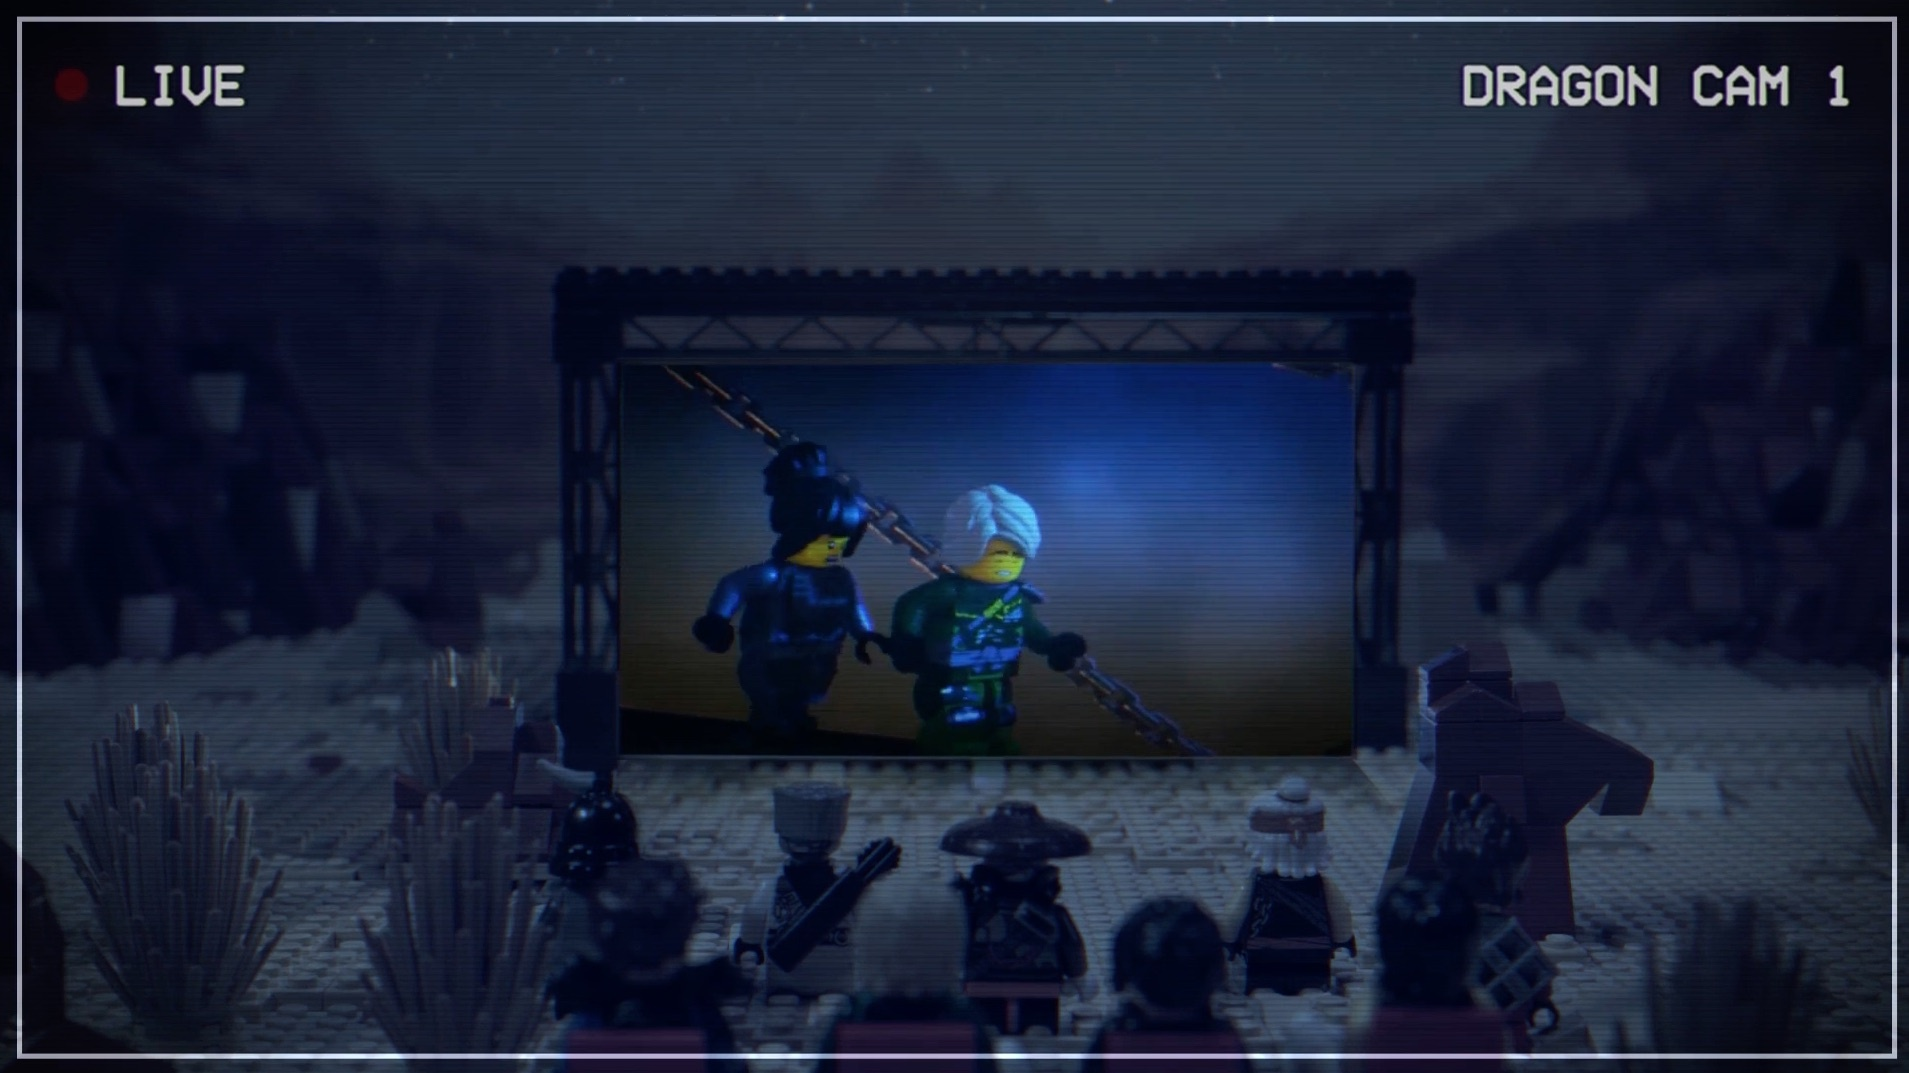 Image Media for Ninjago Dragon Cam